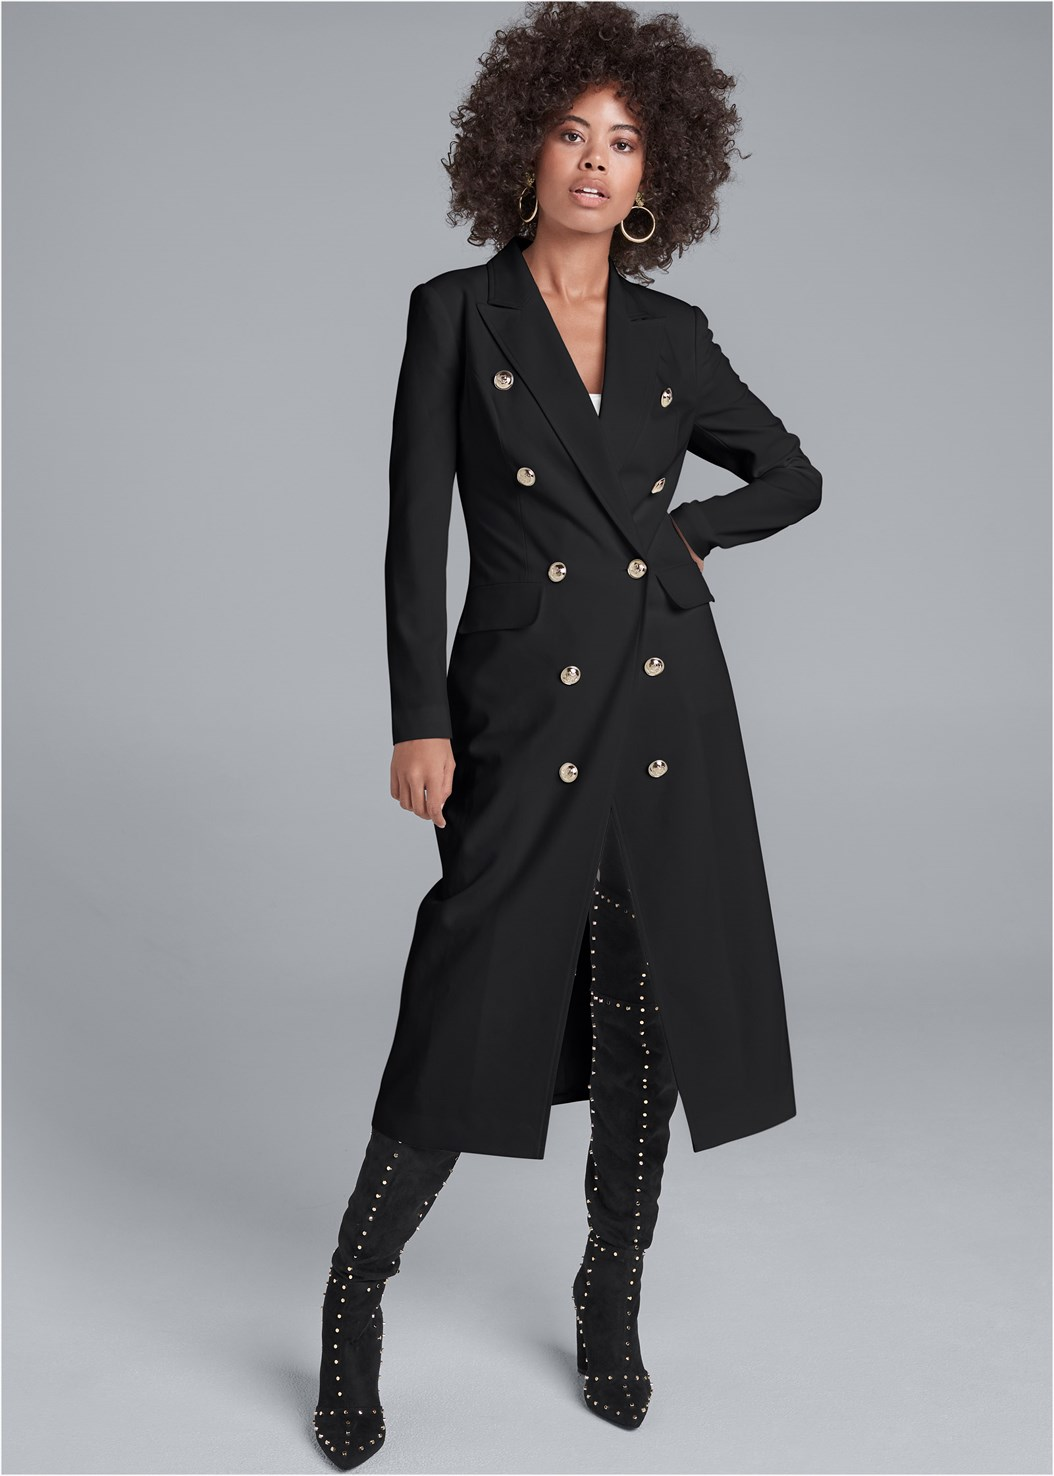 Long Double Breasted Jacket,Basic Cami Two Pack,Lace Cami,Mid Rise Slimming Stretch Jeggings,Pleated Sweater Dress,Kissable Convertible Bra,Studded Over The Knee Boots,Quilted Handbag With Charm,Stud Detail Tote Bag